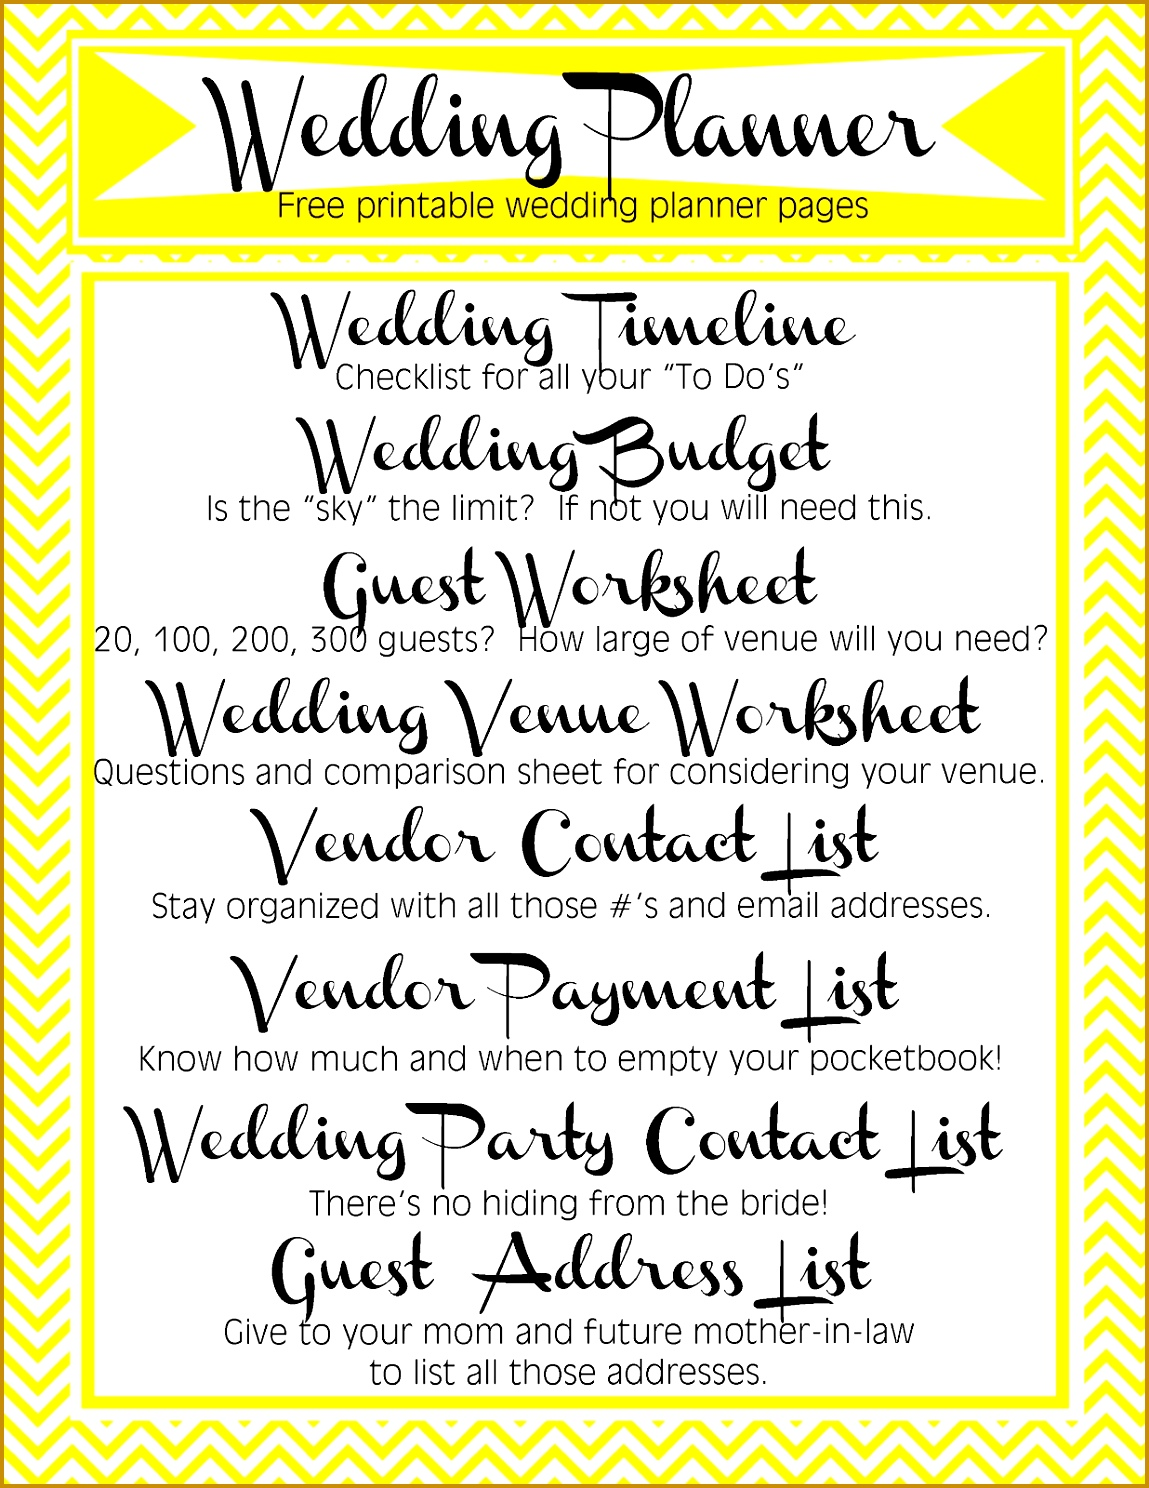 Wedding Planner Template Pages Printable DIY Free Timeline Bud Guest Lists Venue Worksheet Vendor Contact and Payment list wedding party contact list 14881149